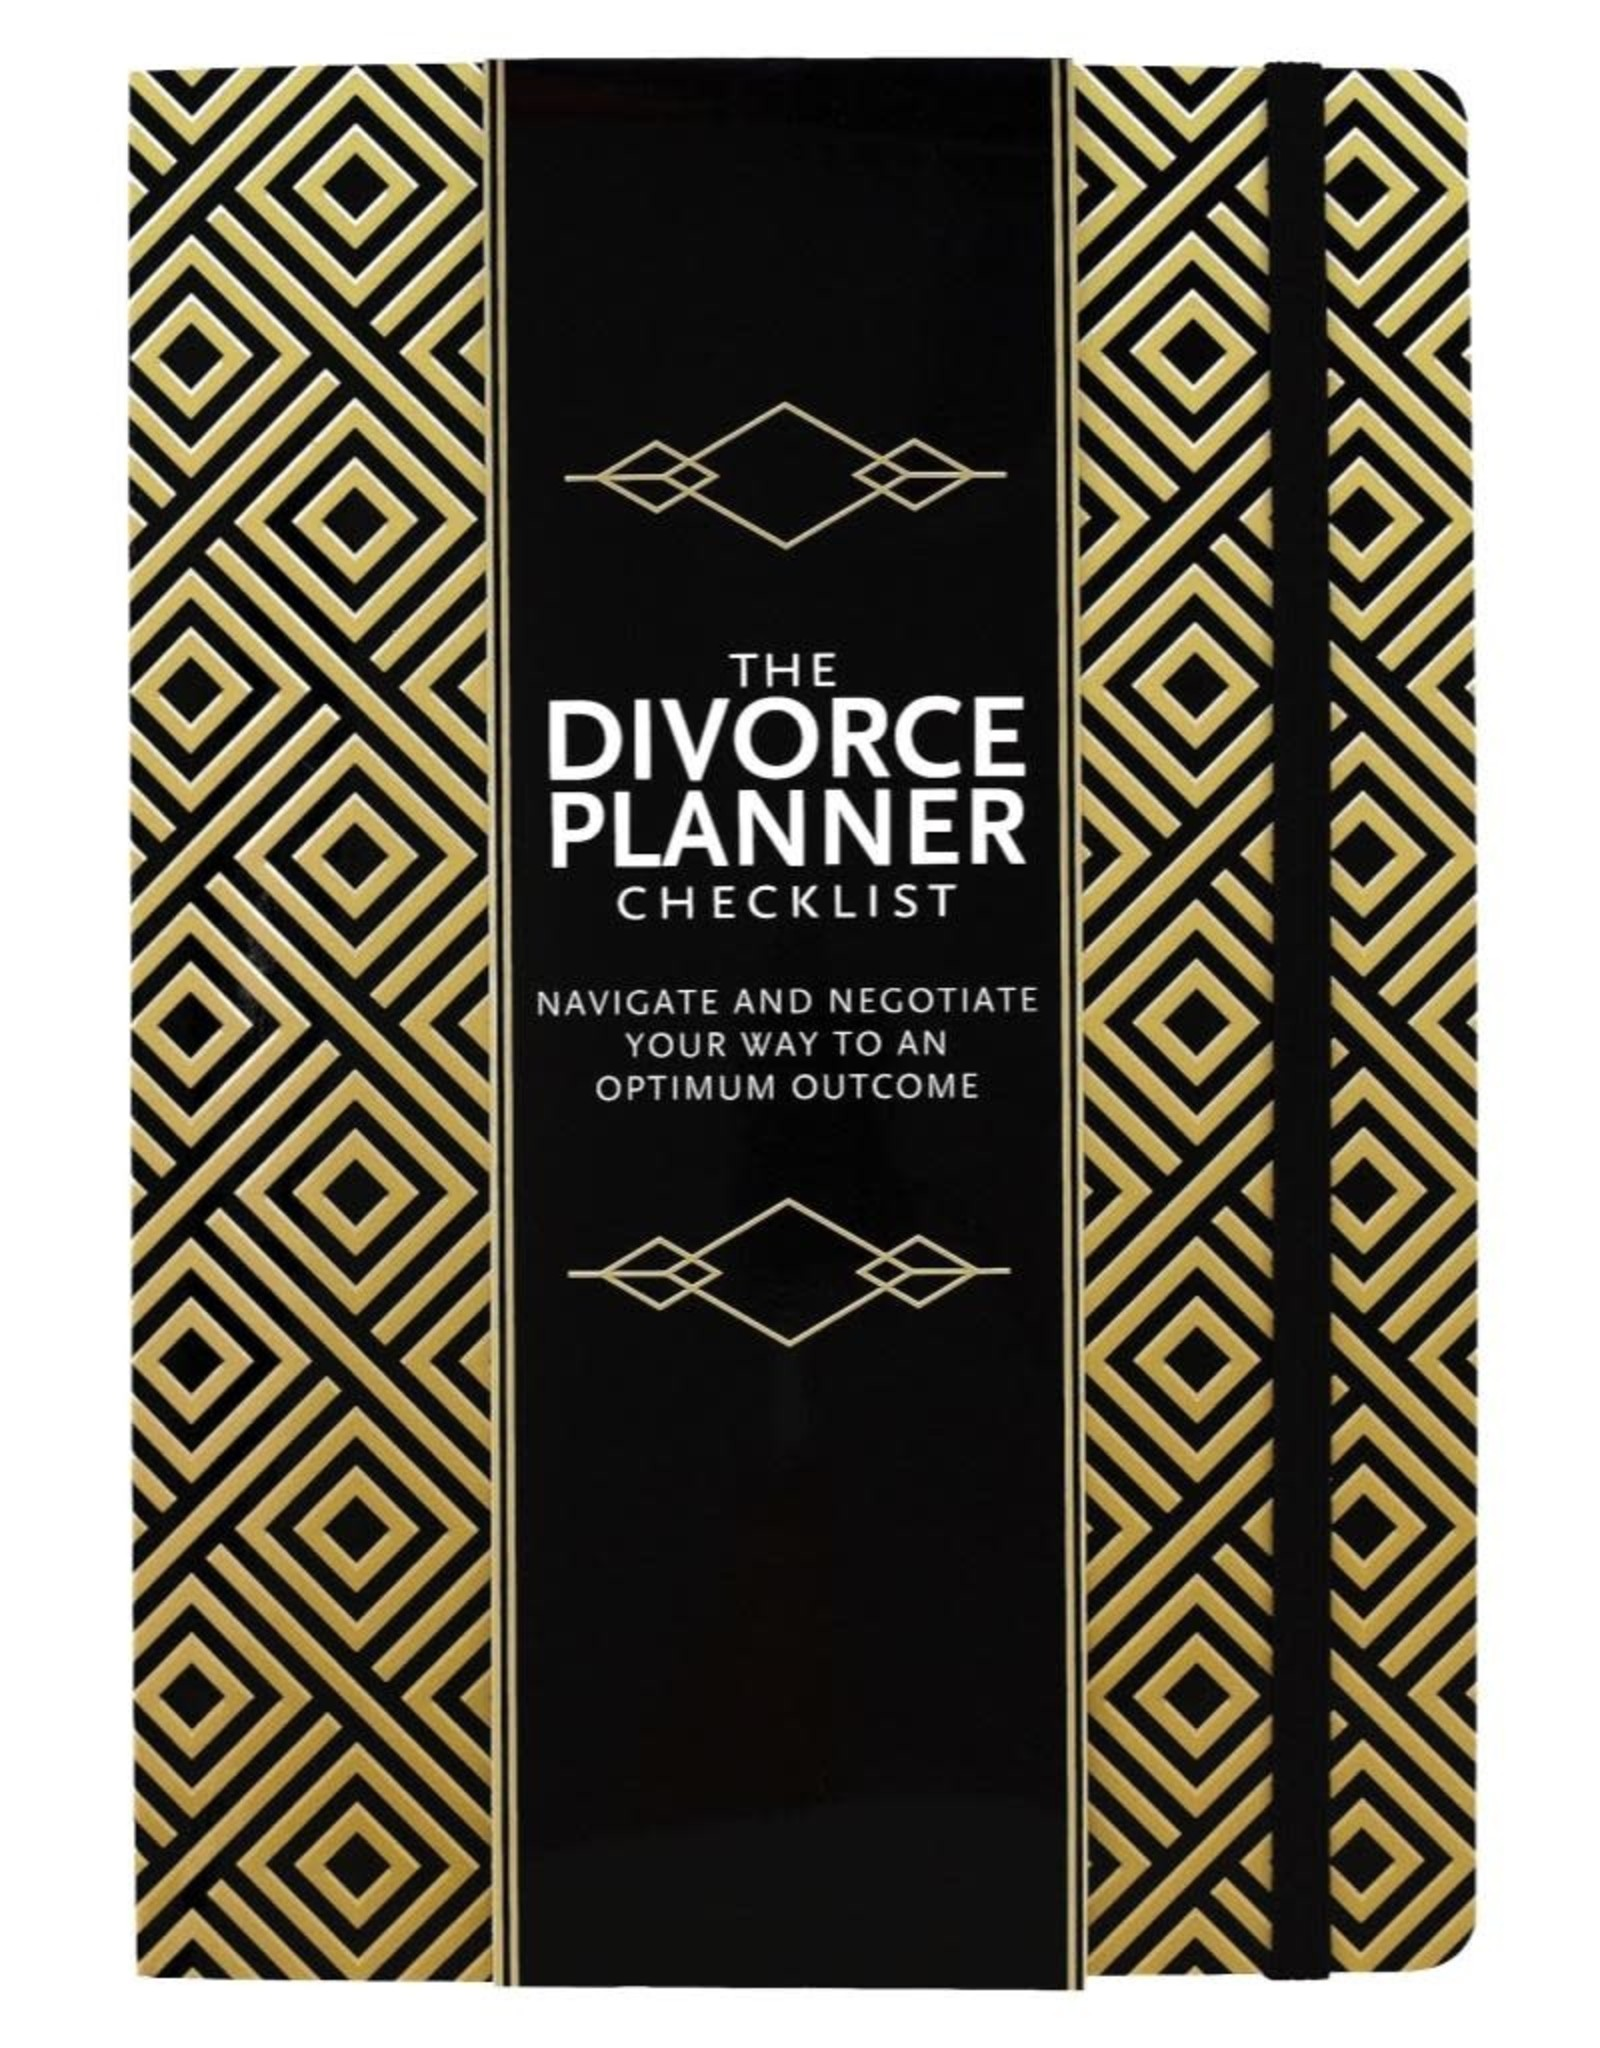 Peter Pauper Divorce Planner Checklist